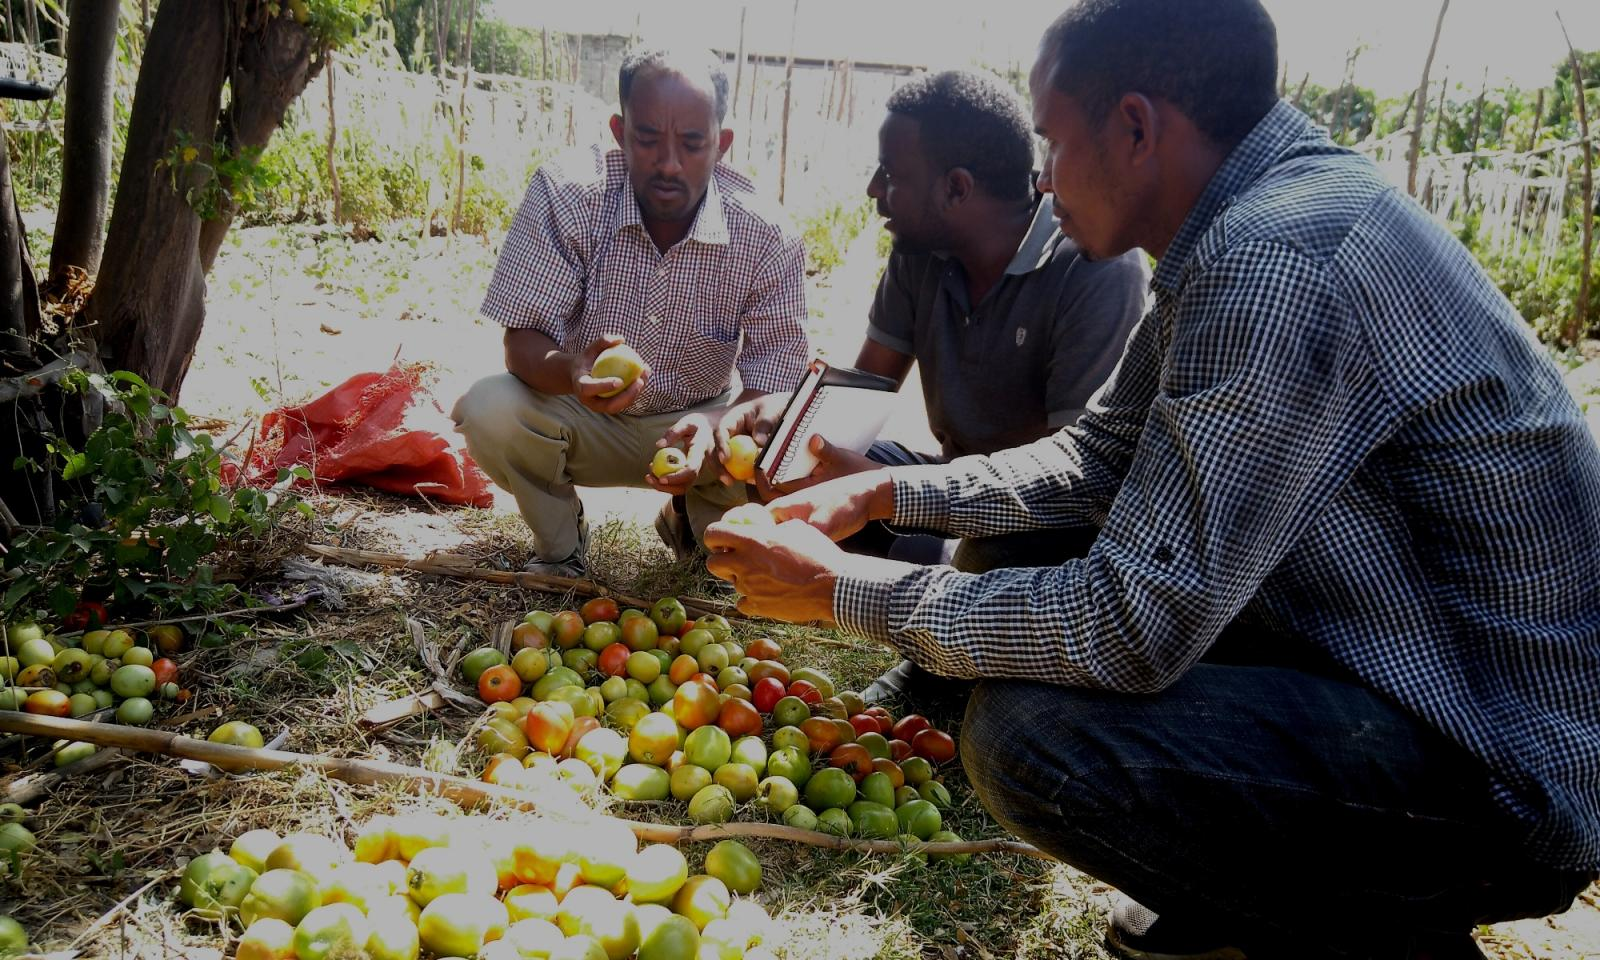 Grading tomatoes from different trials. Photo credit: PAN Ethiopia